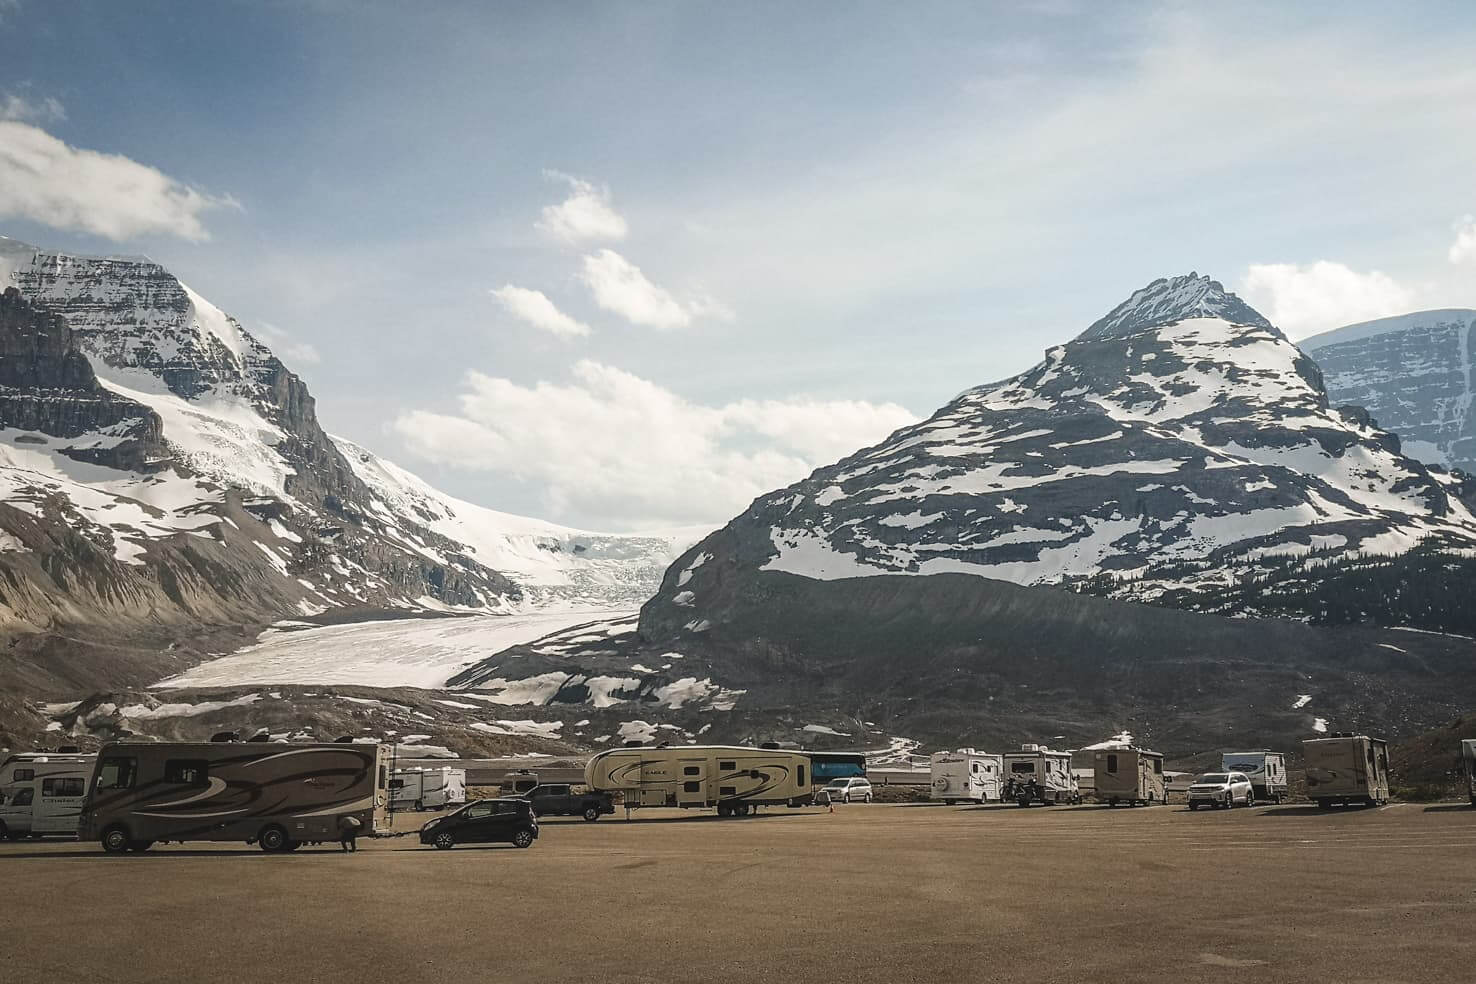 Camping in Jasper National Park - Icefield Centre